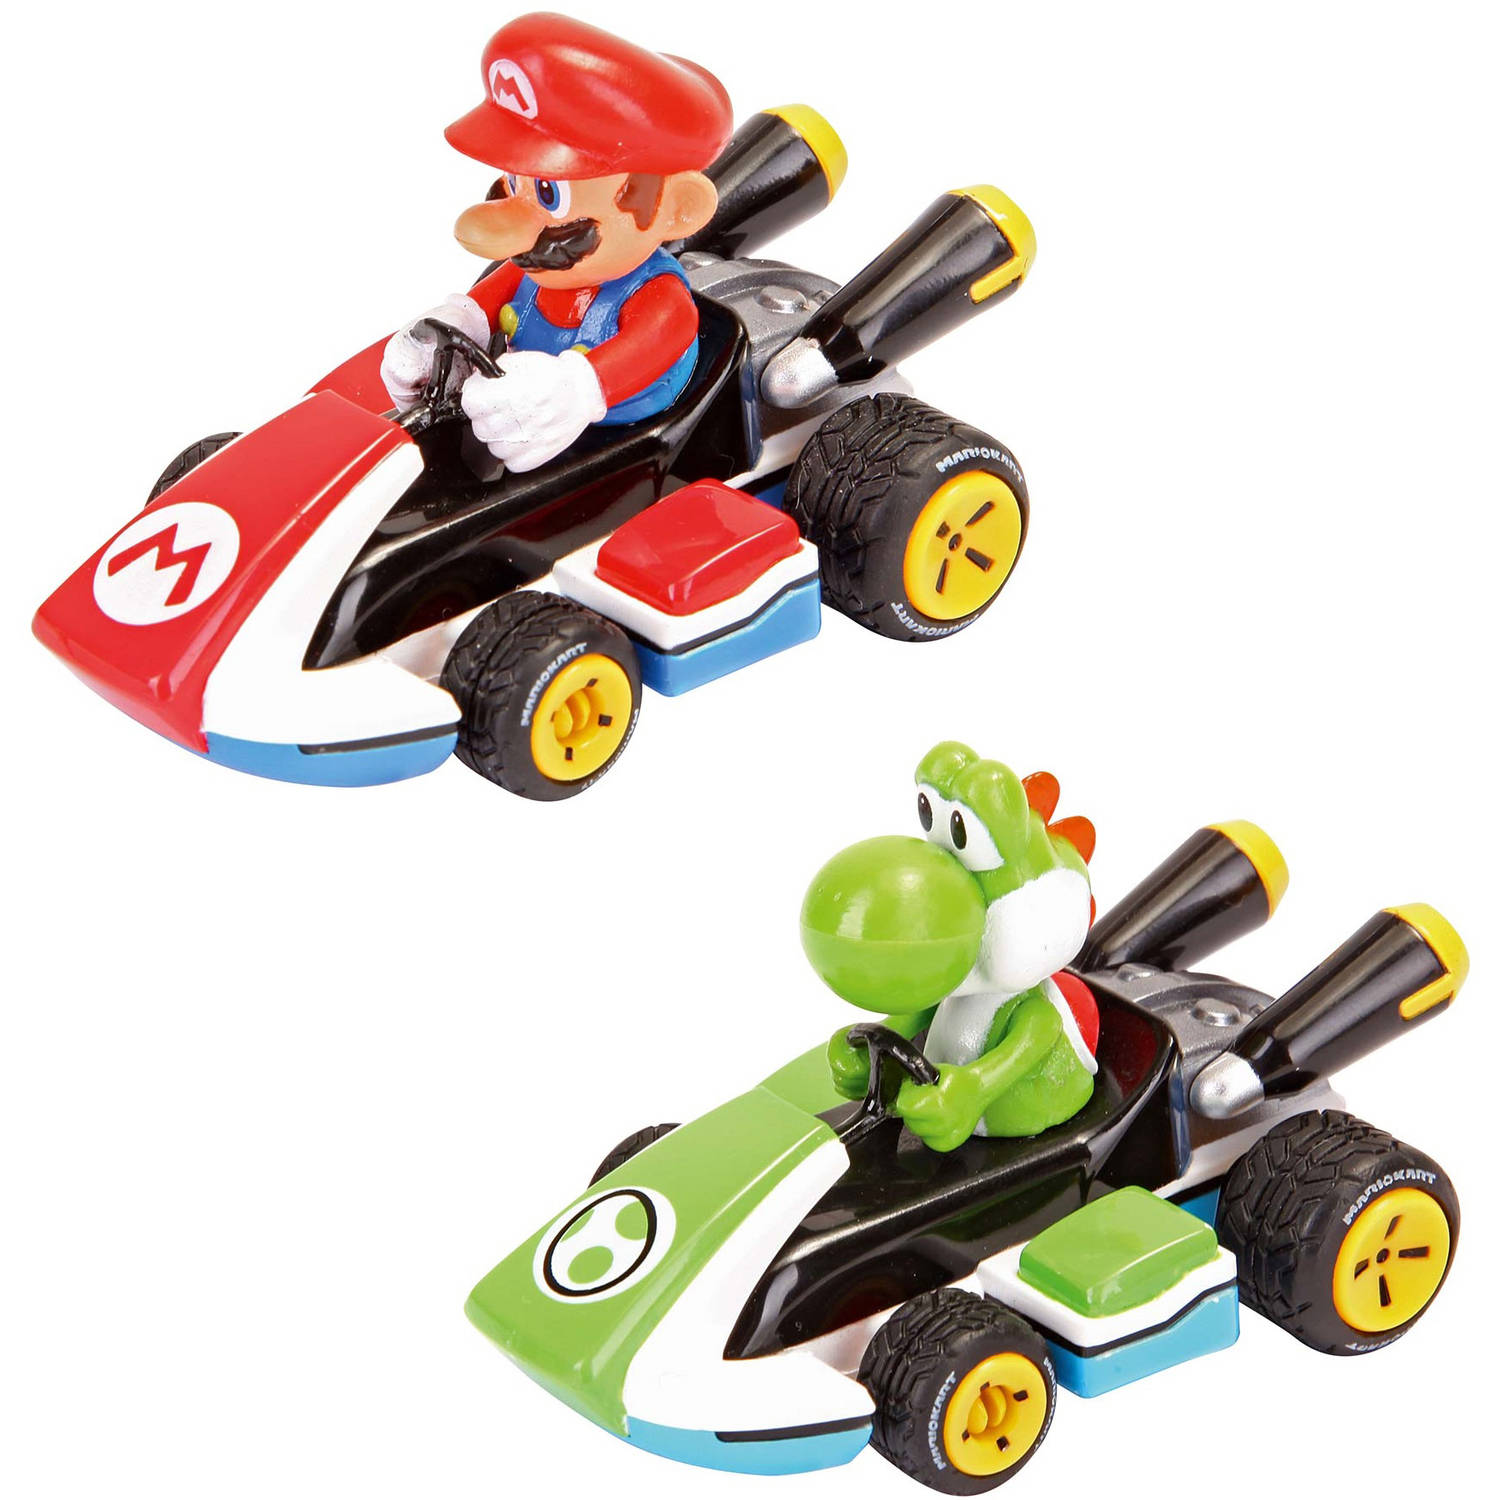 Carrera Pull and Speed Mario Kart 8 Twin-Pack Racers, Mario and Yoshi